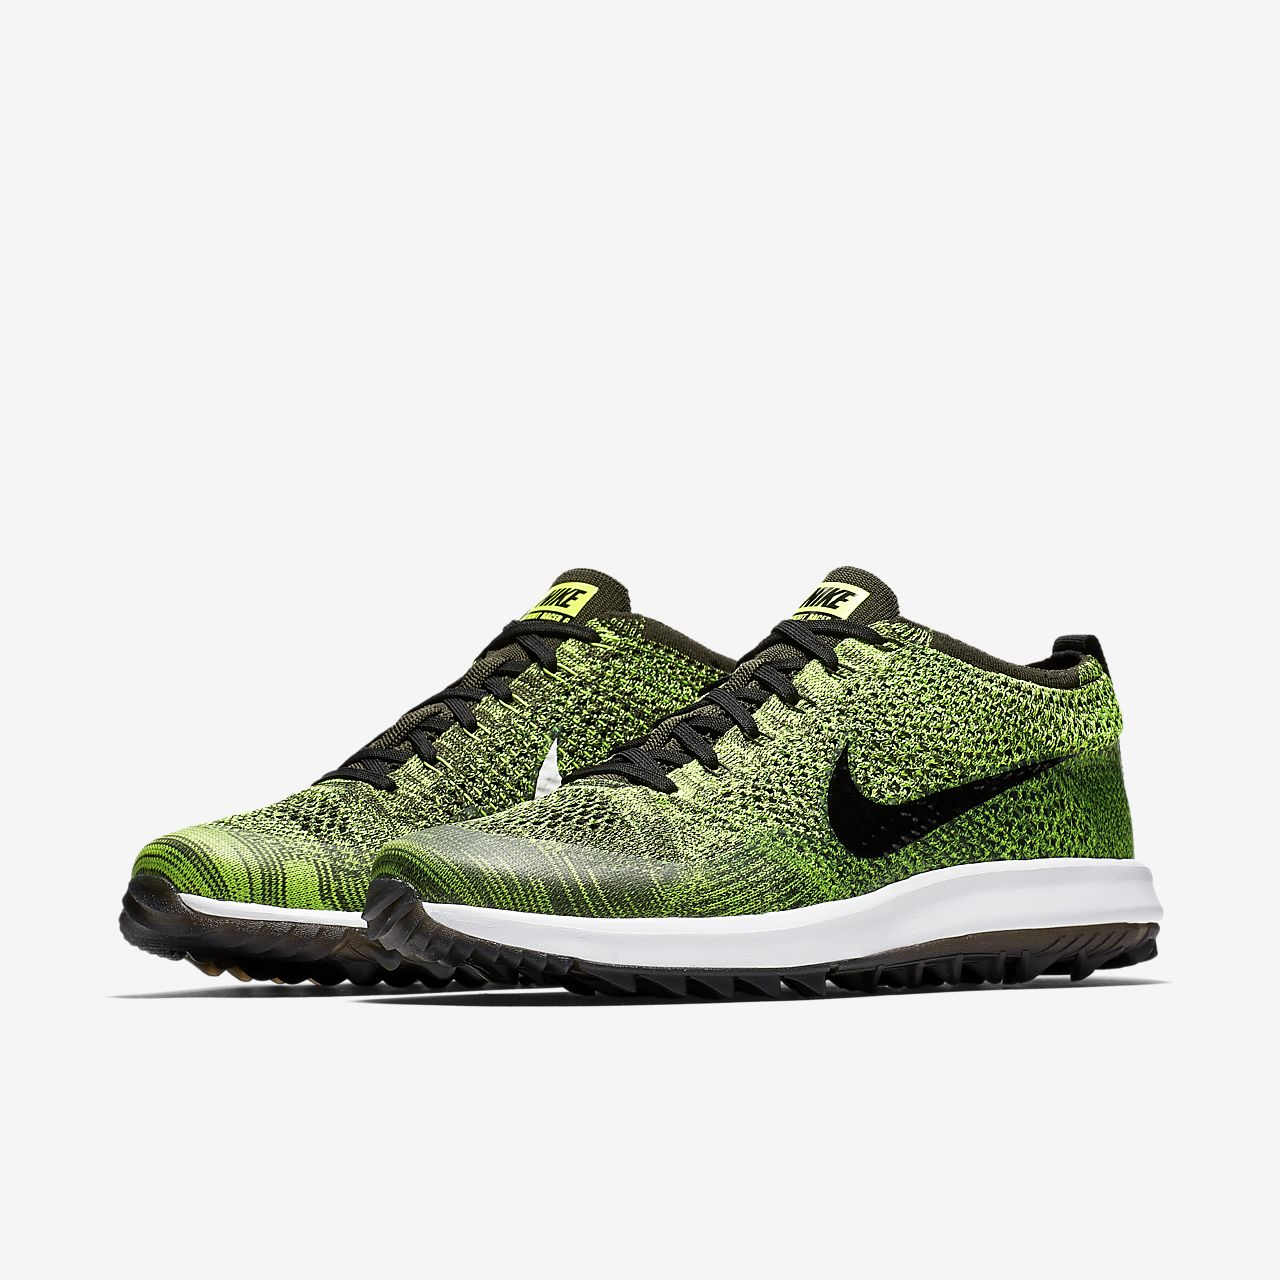 87f933353a3a Buy nike flyknit racer availability   up to 78% Discounts